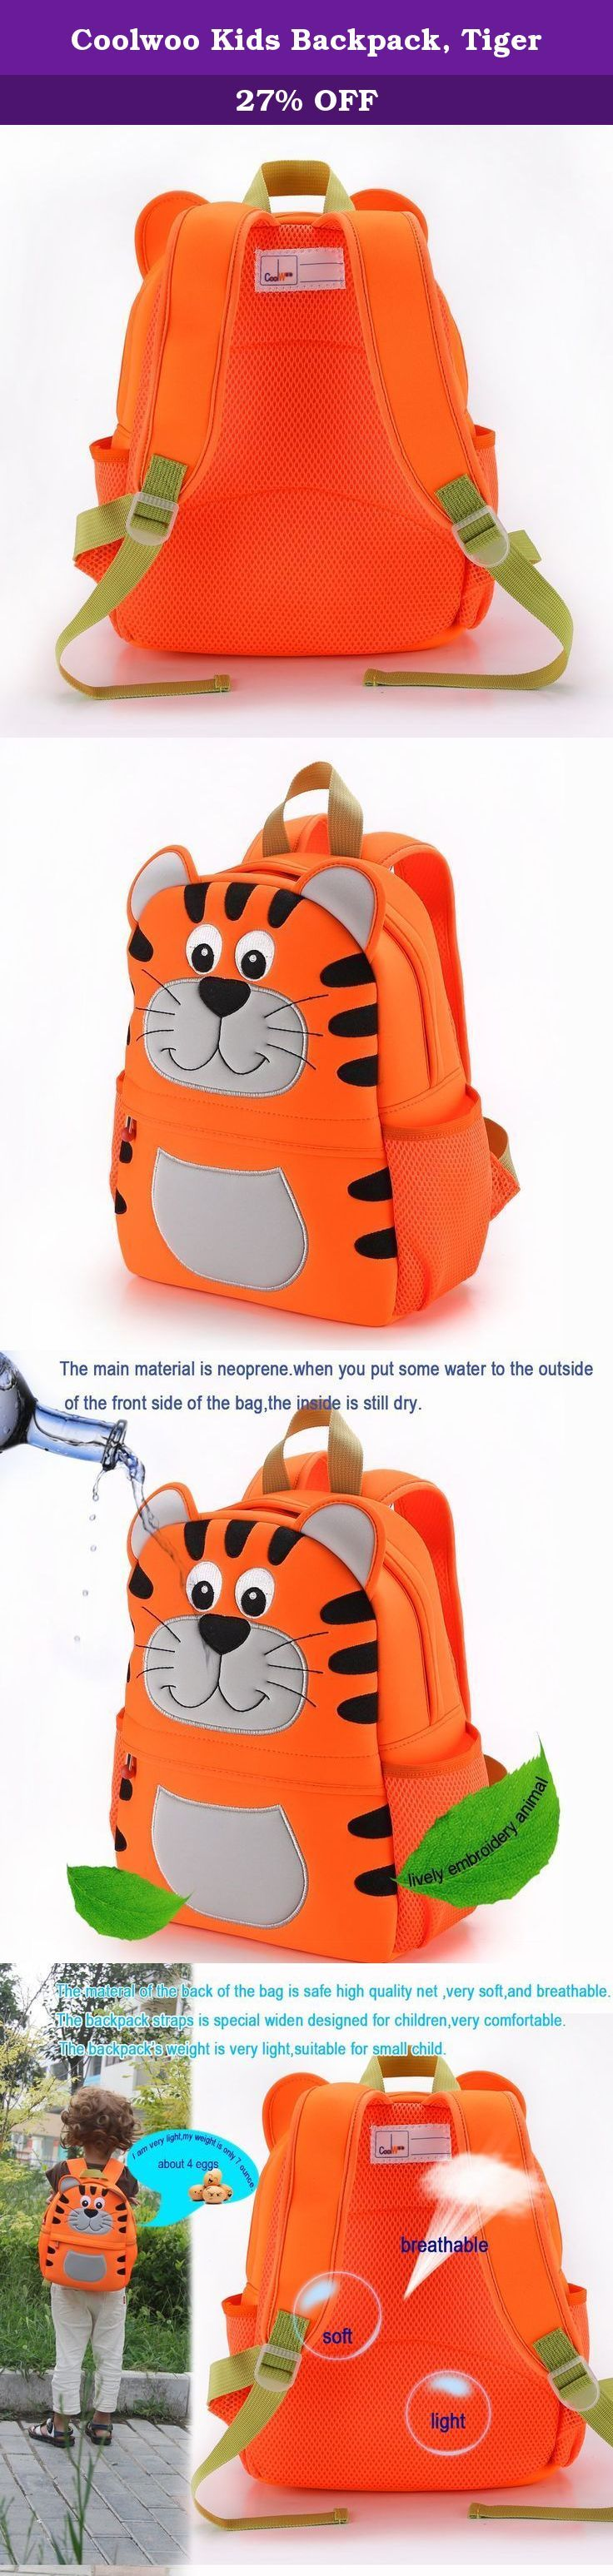 Coolwoo Kids Backpack, Tiger. *Made by neoprene as diving material. So if the outside gets wet, everything inside of the backpack stays dry. *It is very soft and lightweight. The super lightweight makes your kids easy to carry around. *There is a roomy main compartment with a smaller pocked on the inside for the backpack stores the kid's toys, snacks and other stuffs,and a small zippered pocket on the outside with an adjustable mesh bottle pocket. It is very useful in teaching kids young…